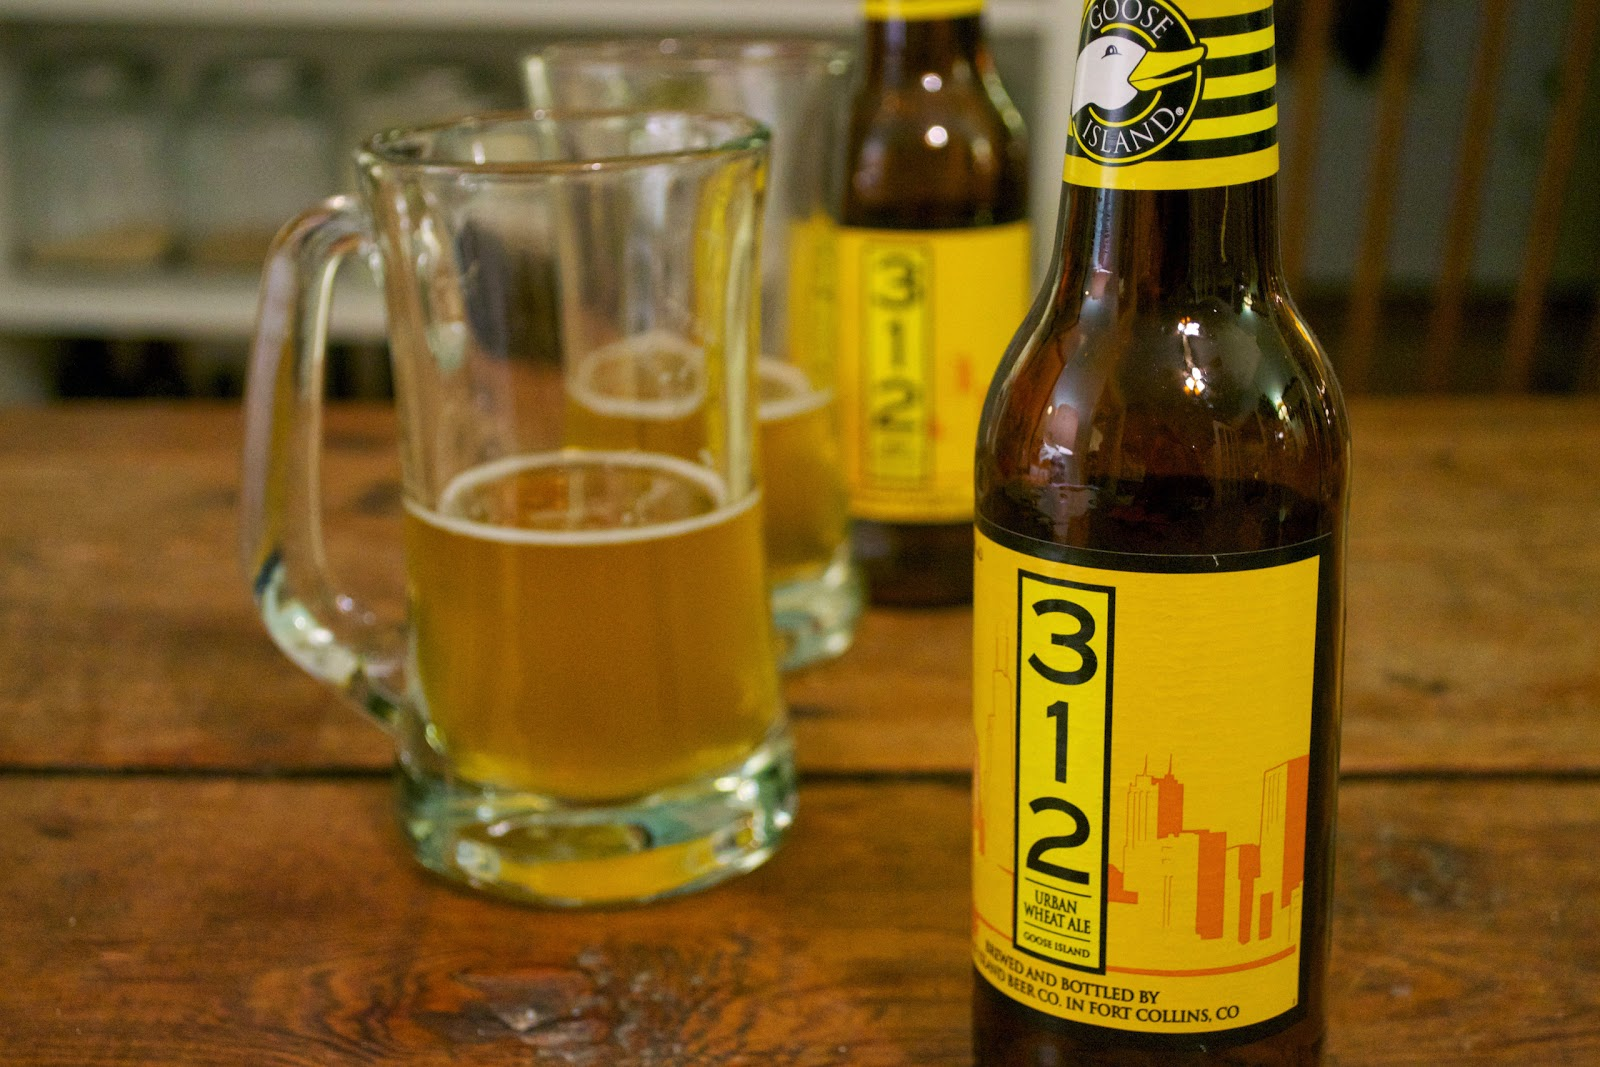 beer to pick up this weekend: 312 urban wheat ale by goose island